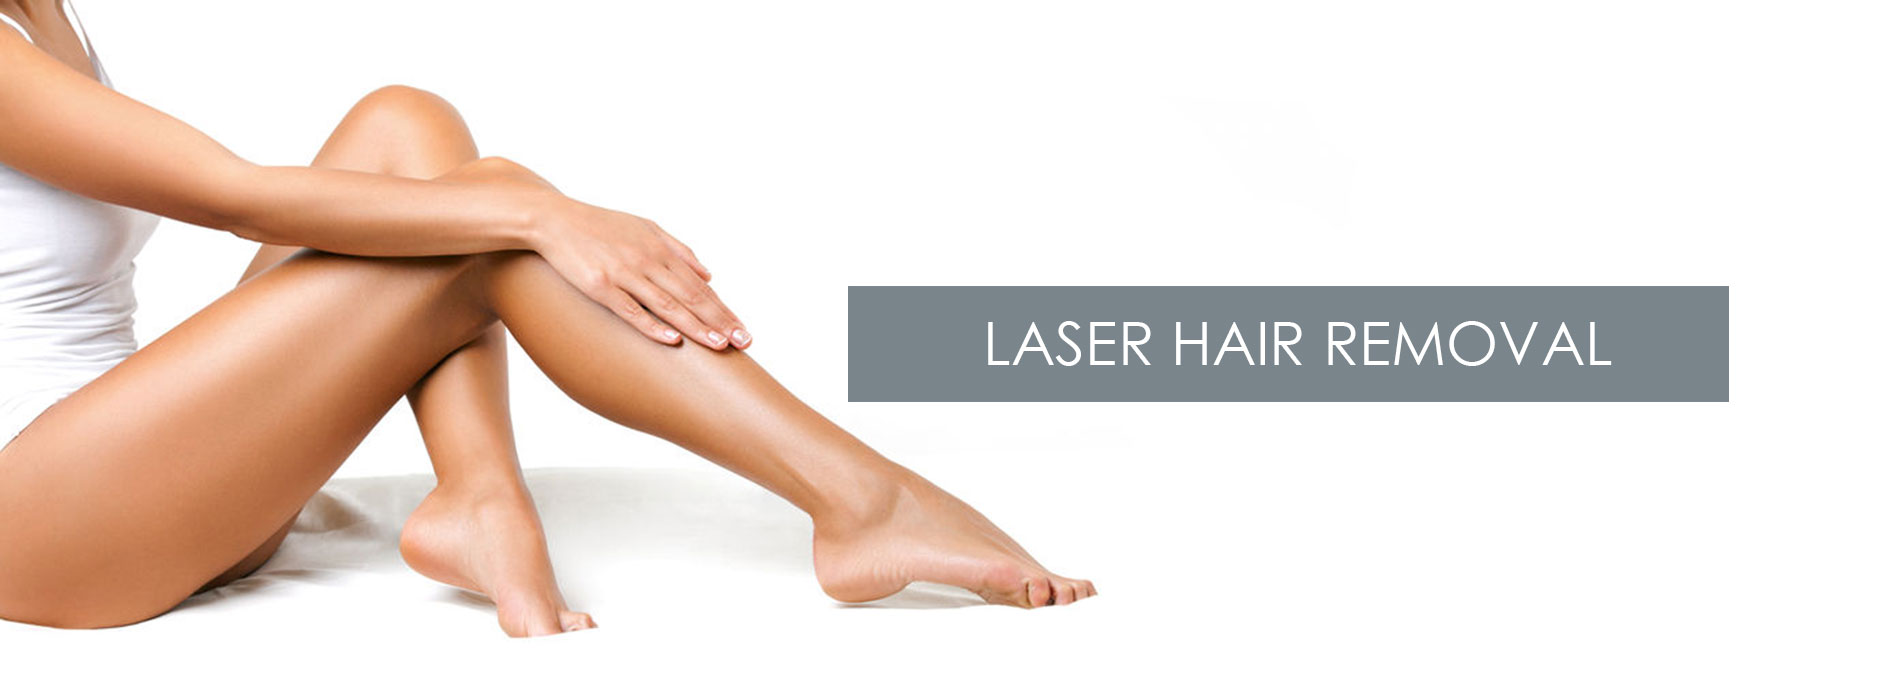 Laser-Hair-Removal-Dunstable-Harpenden Aesthetics Clinic